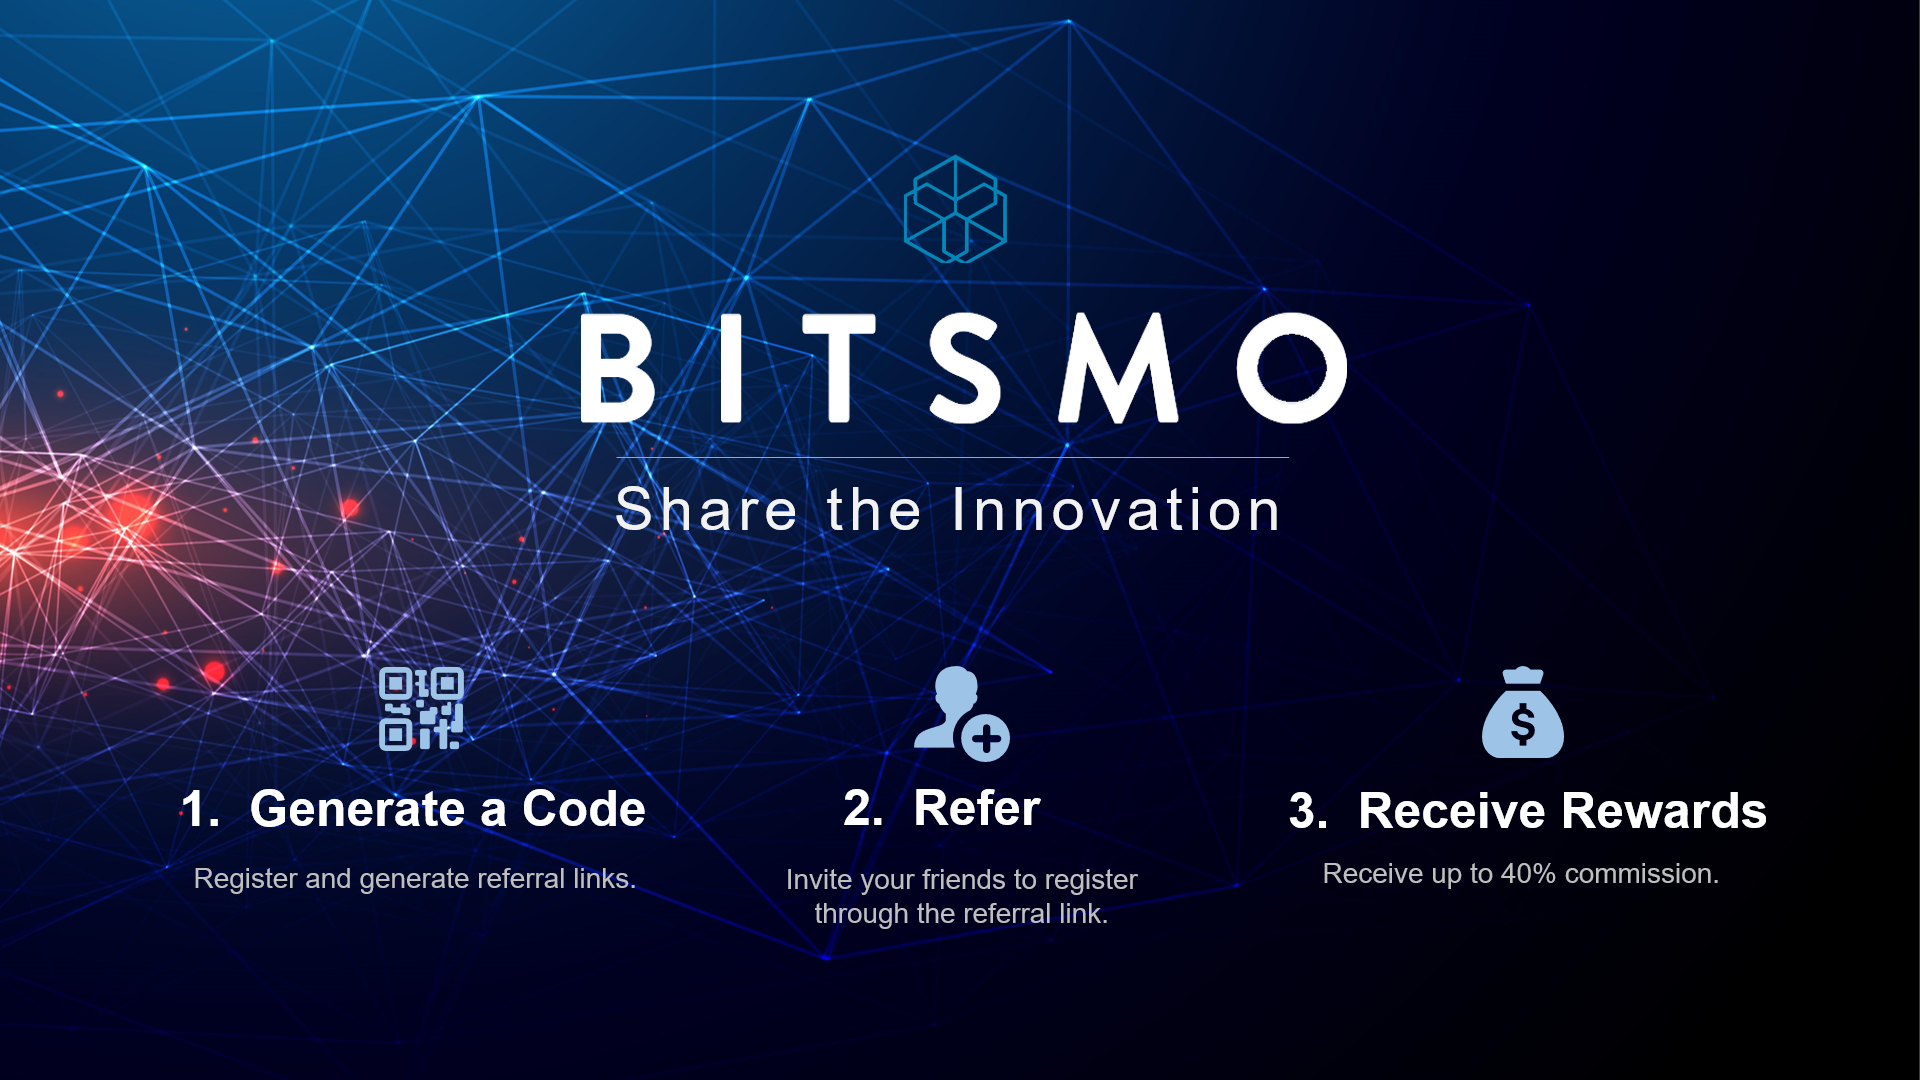 Bitsmo's Referral Program (Up to 40% Commission) – Bitsmo – Medium